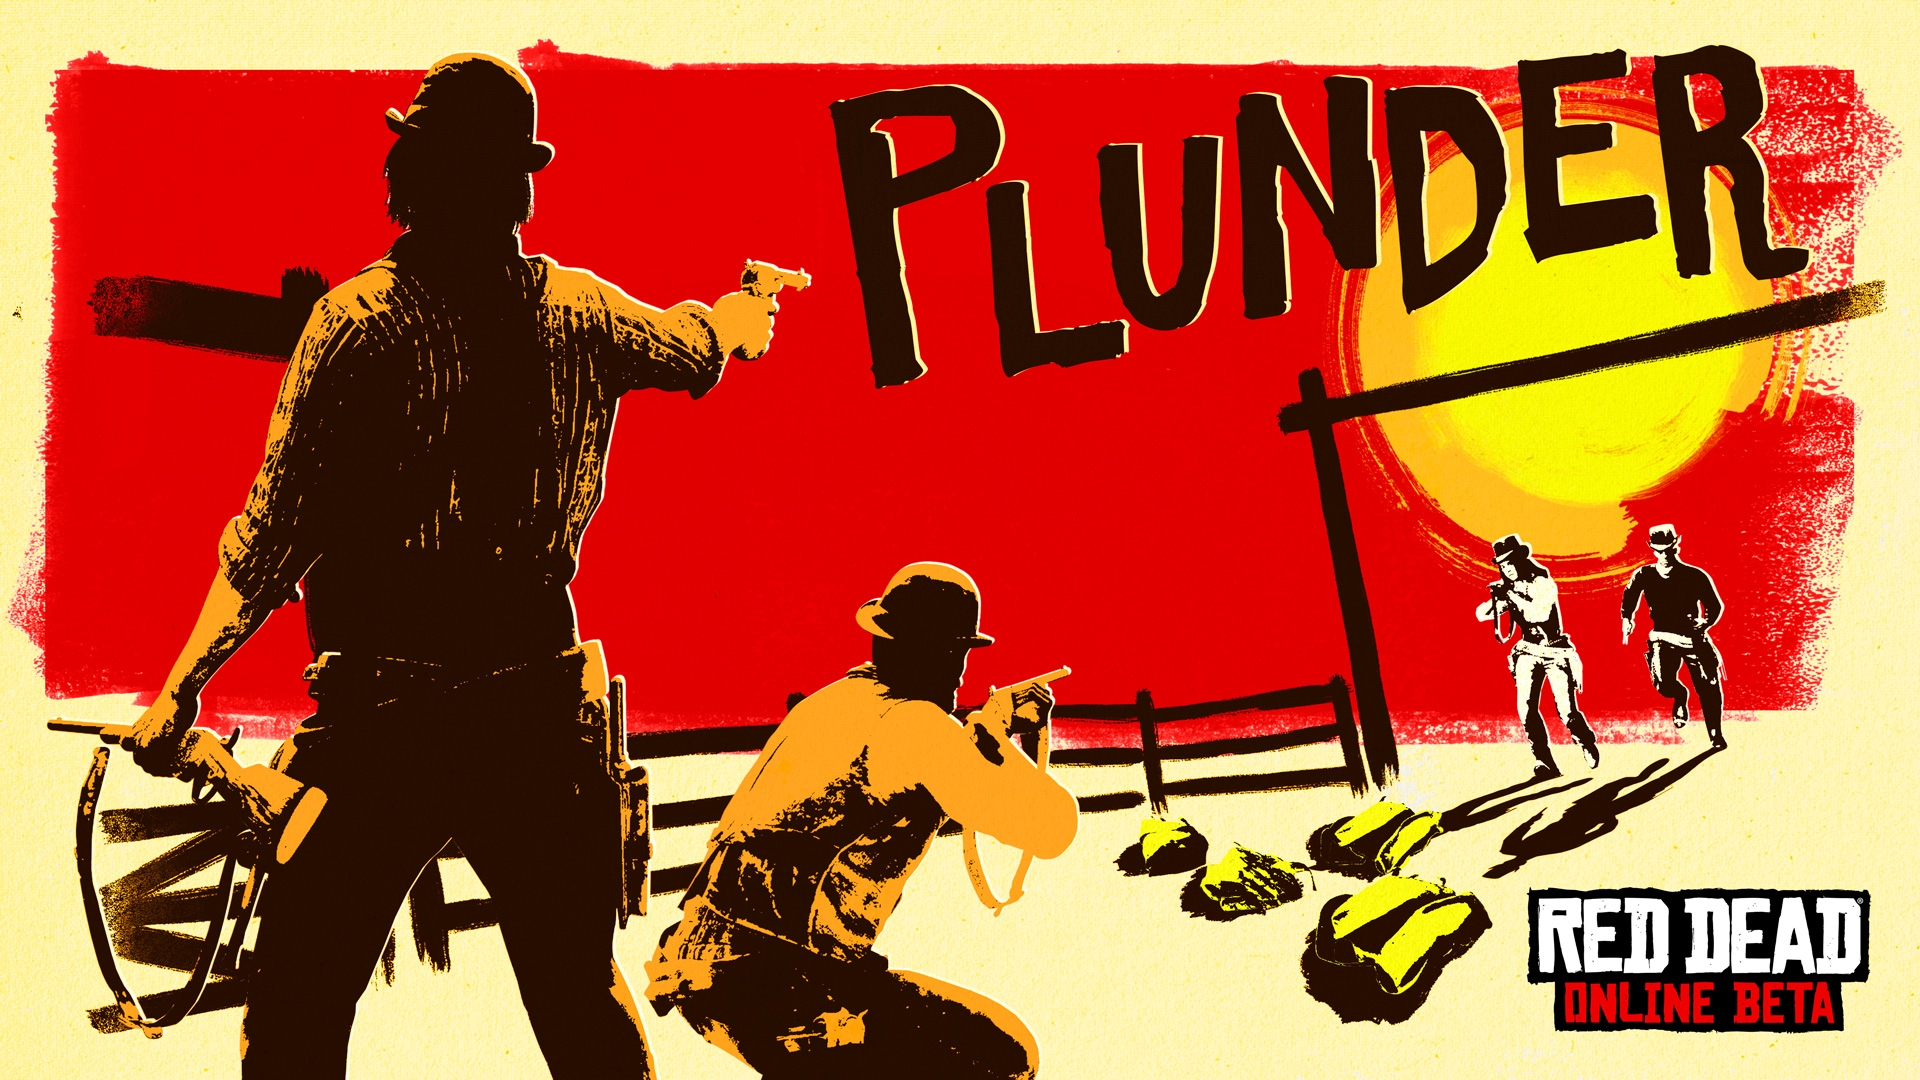 Red Dead Online: Plunder Showdown Mode now available & more